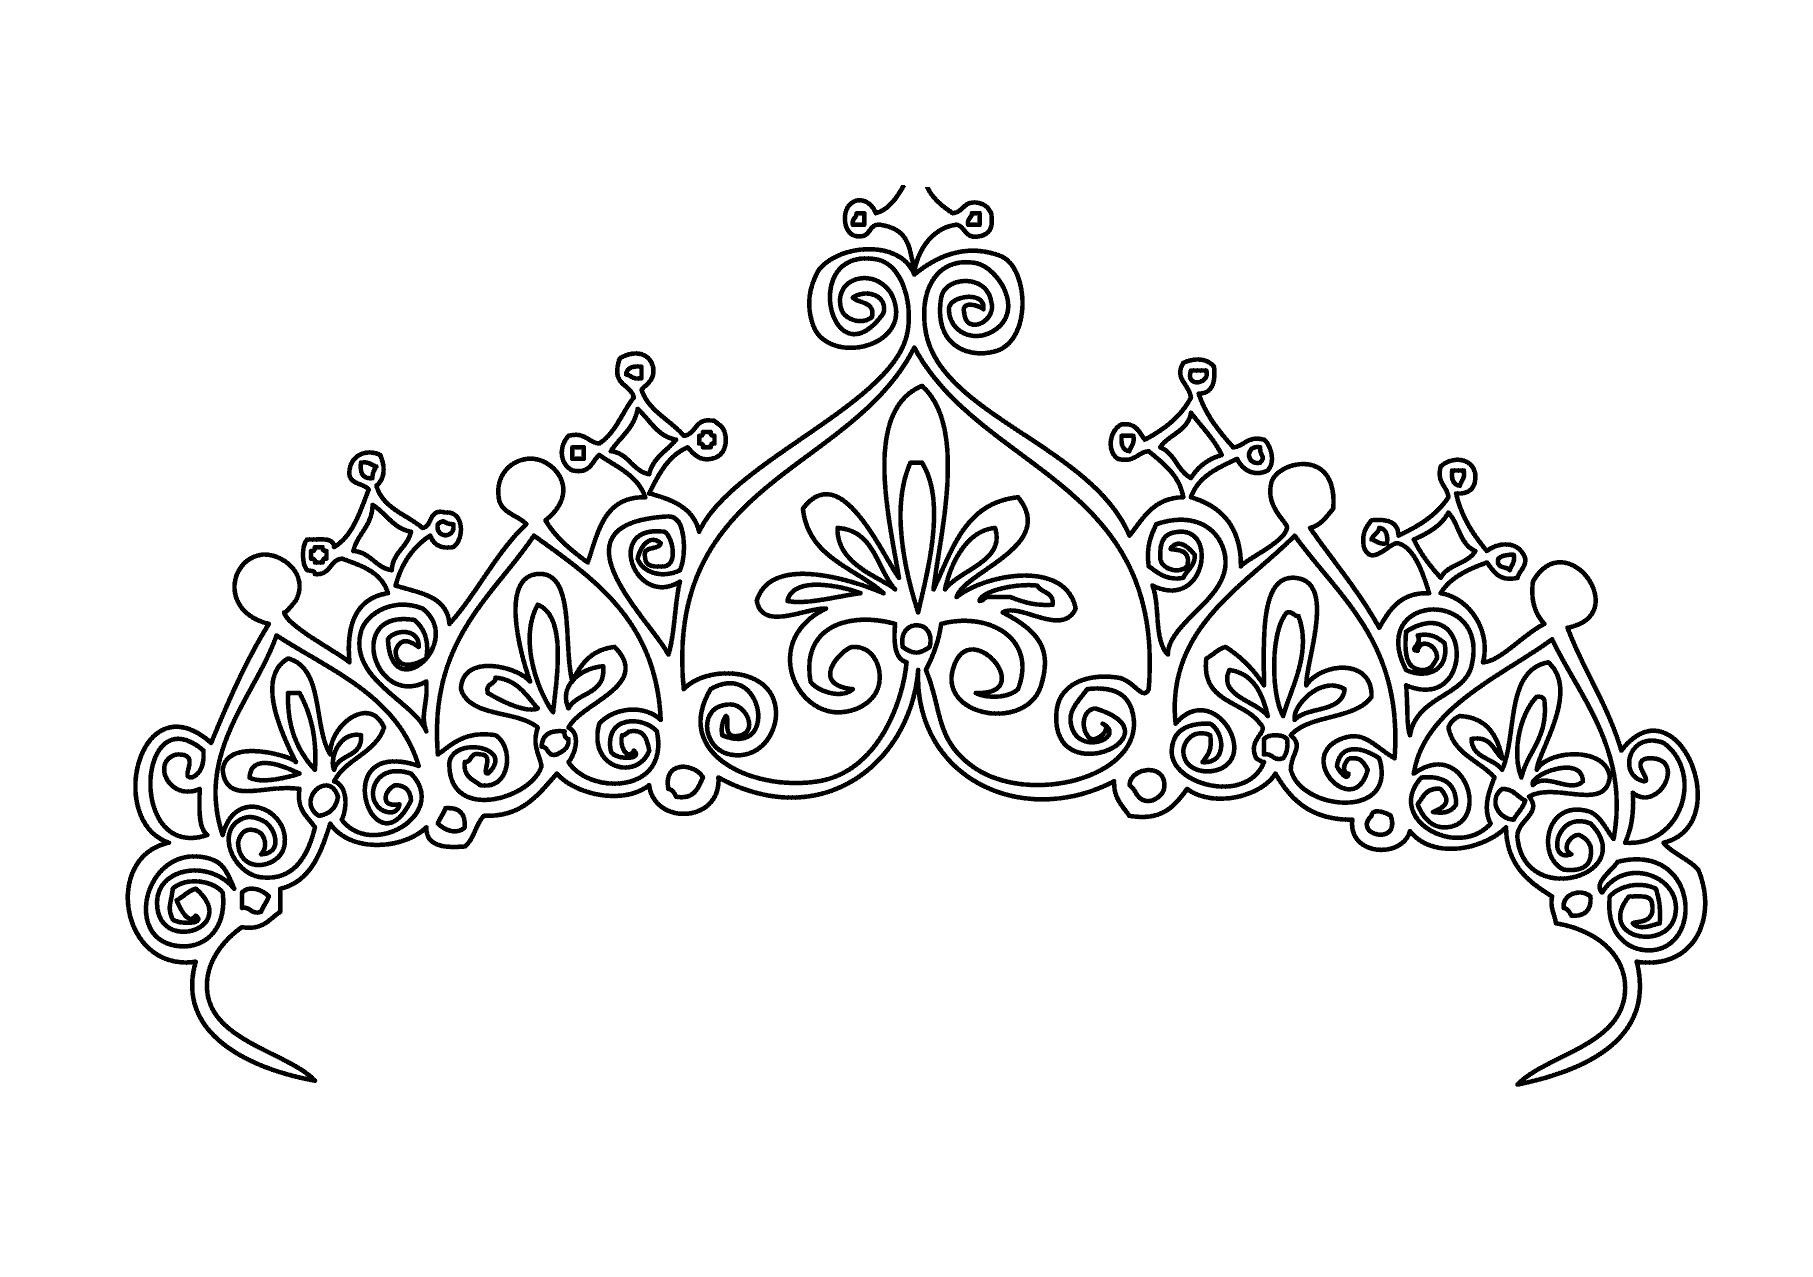 Coloring Pages Of Princess Crowns (With images) Coloring